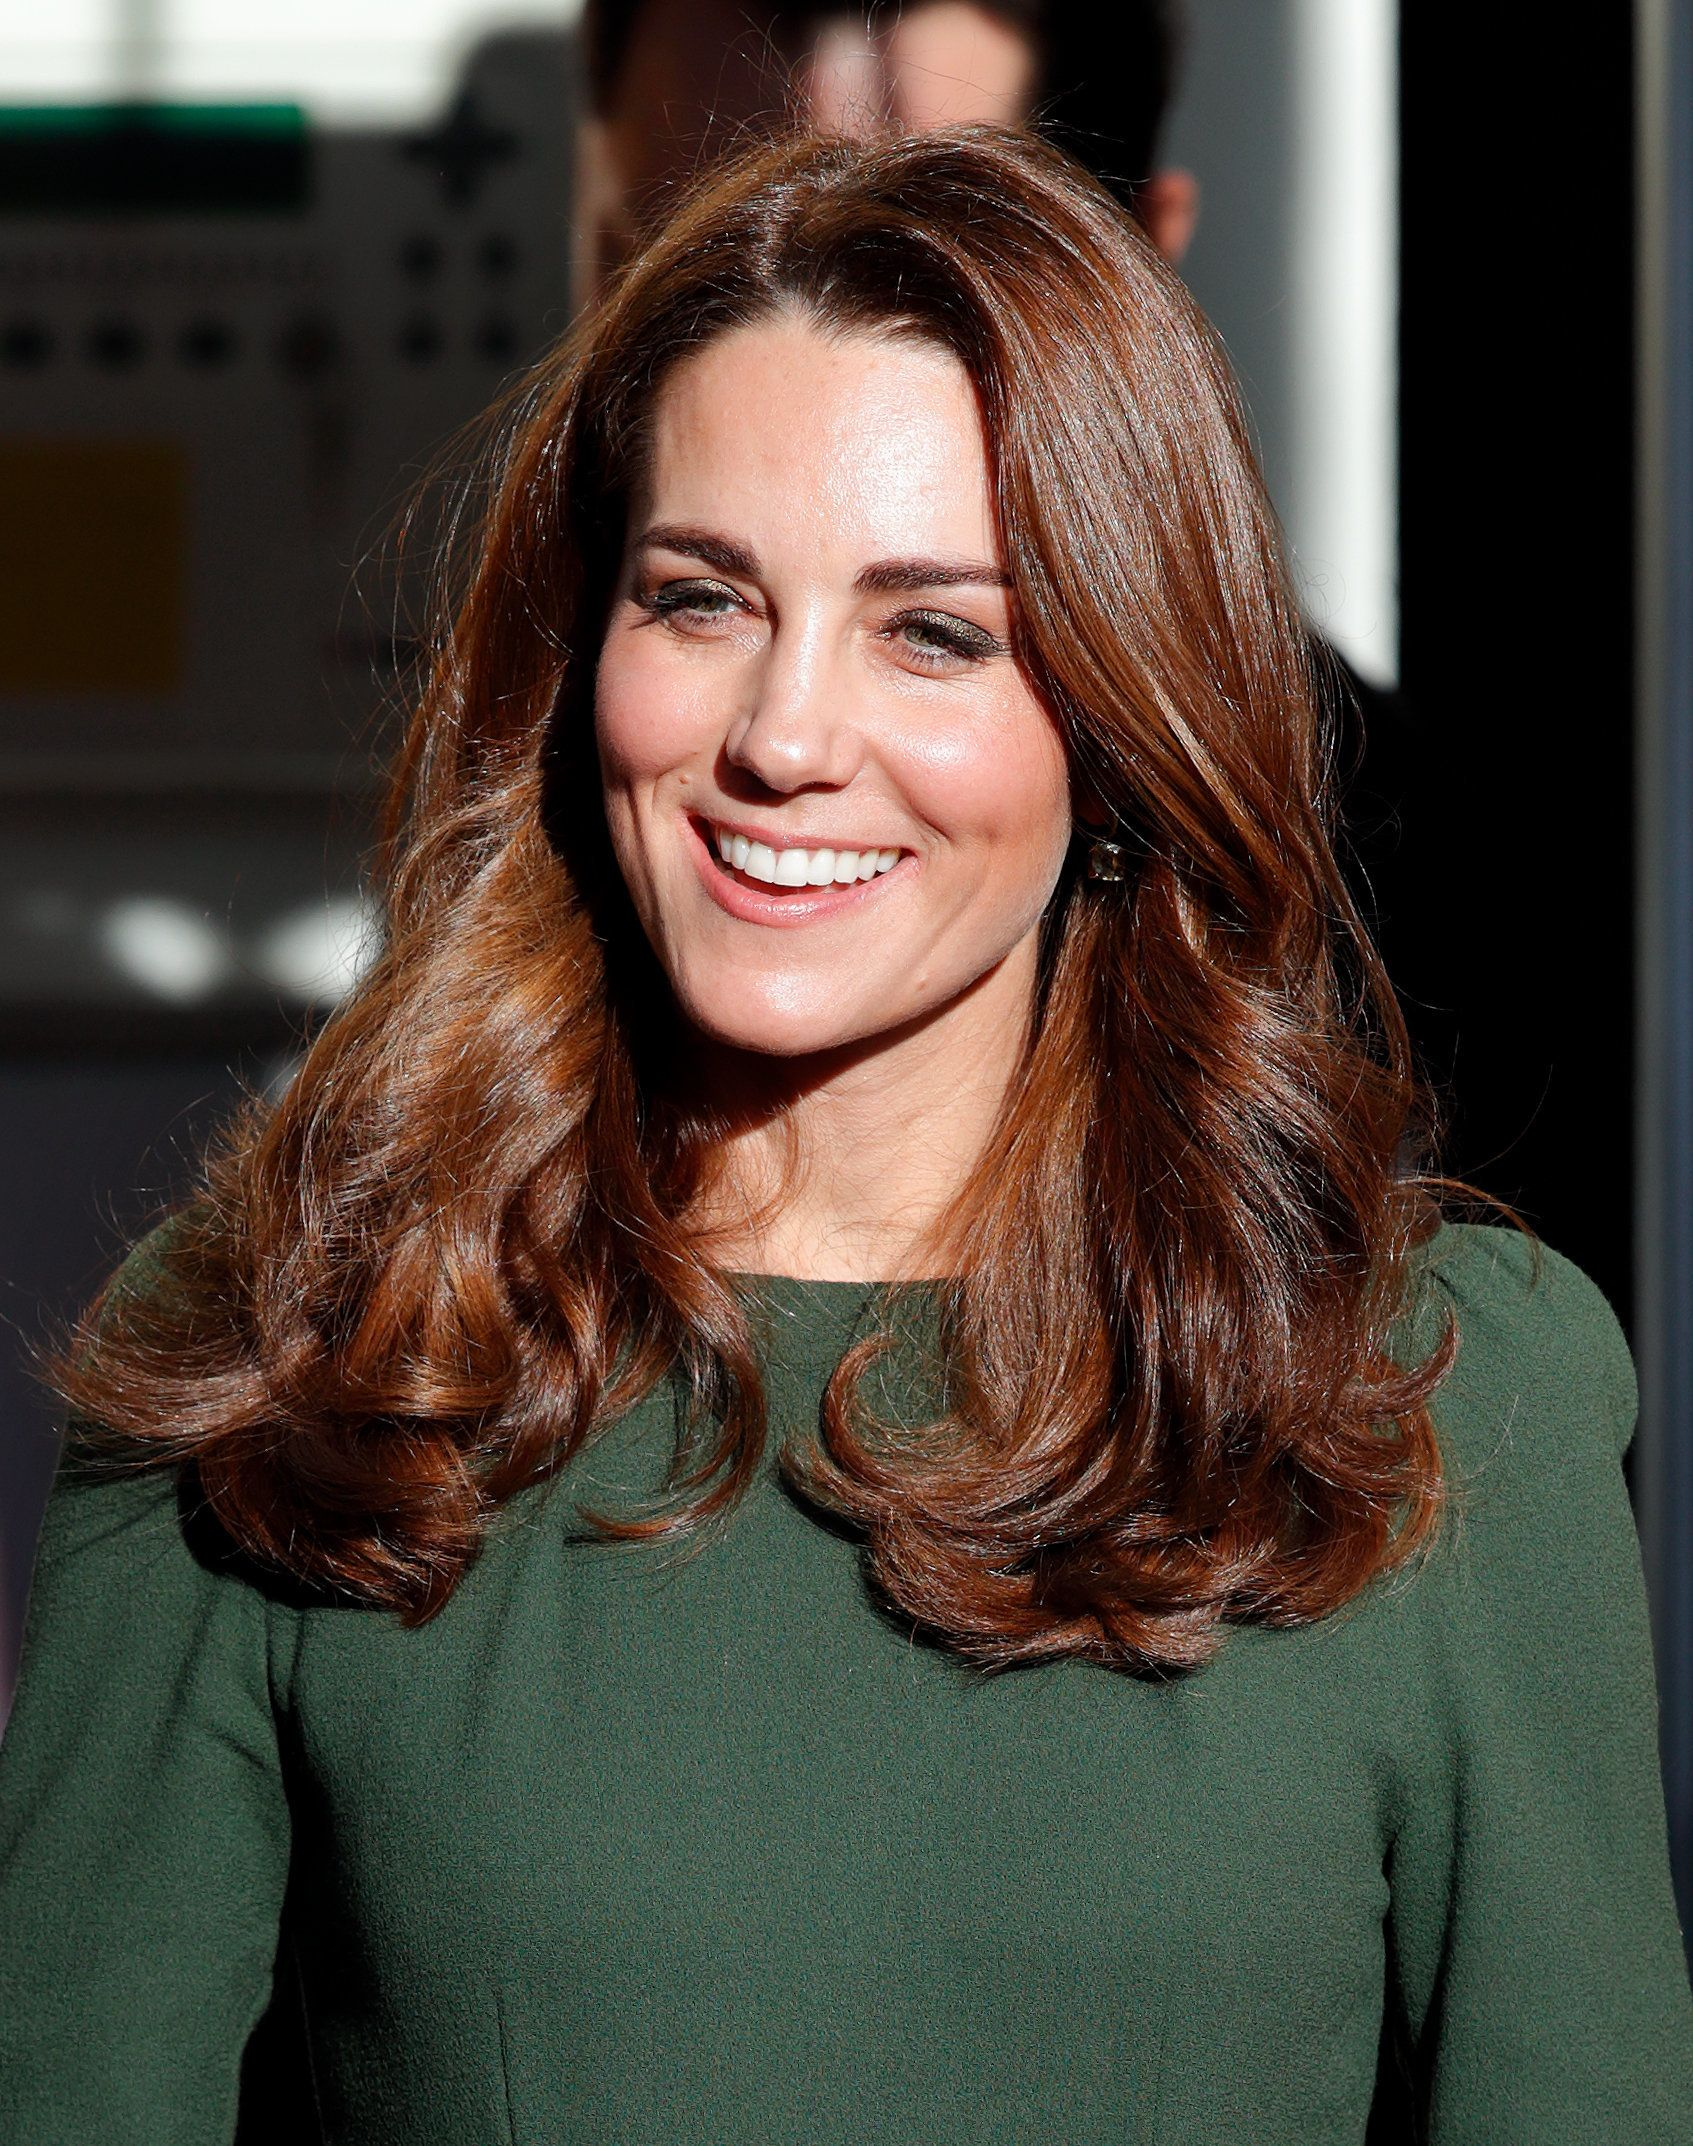 LEWISHAM, UNITED KINGDOM - JANUARY 22: (EMBARGOED FOR PUBLICATION IN UK NEWSPAPERS UNTIL 24 HOURS AFTER CREATE DATE AND TIME) Catherine, Duchess of Cambridge visits Family Action to launch a new national support line on January 22, 2019 in Lewisham, England. Family Action, which celebrates it's 150th anniversary in 2019, is a charity working directly with vulnerable children and families through over 135 community based services. (Photo by Max Mumby/Indigo/Getty Images)